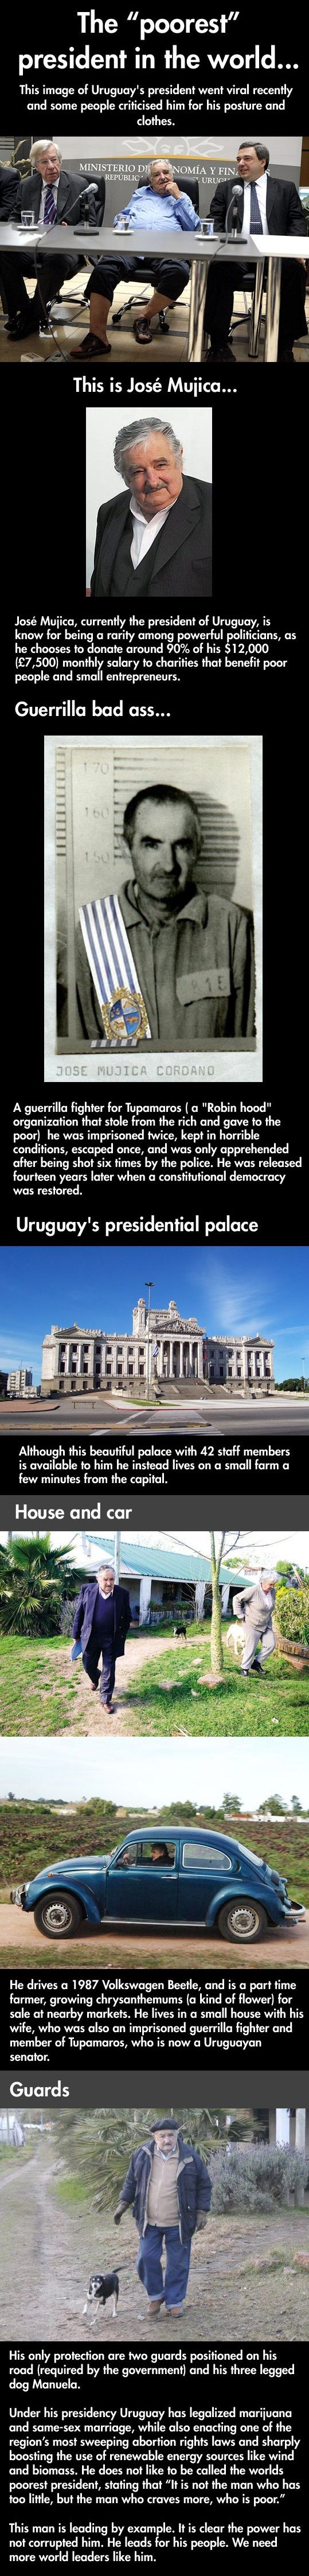 This man, the President of Uruguay and the 'poorest president' in the world could teach the rest of the world's leaders a lot..